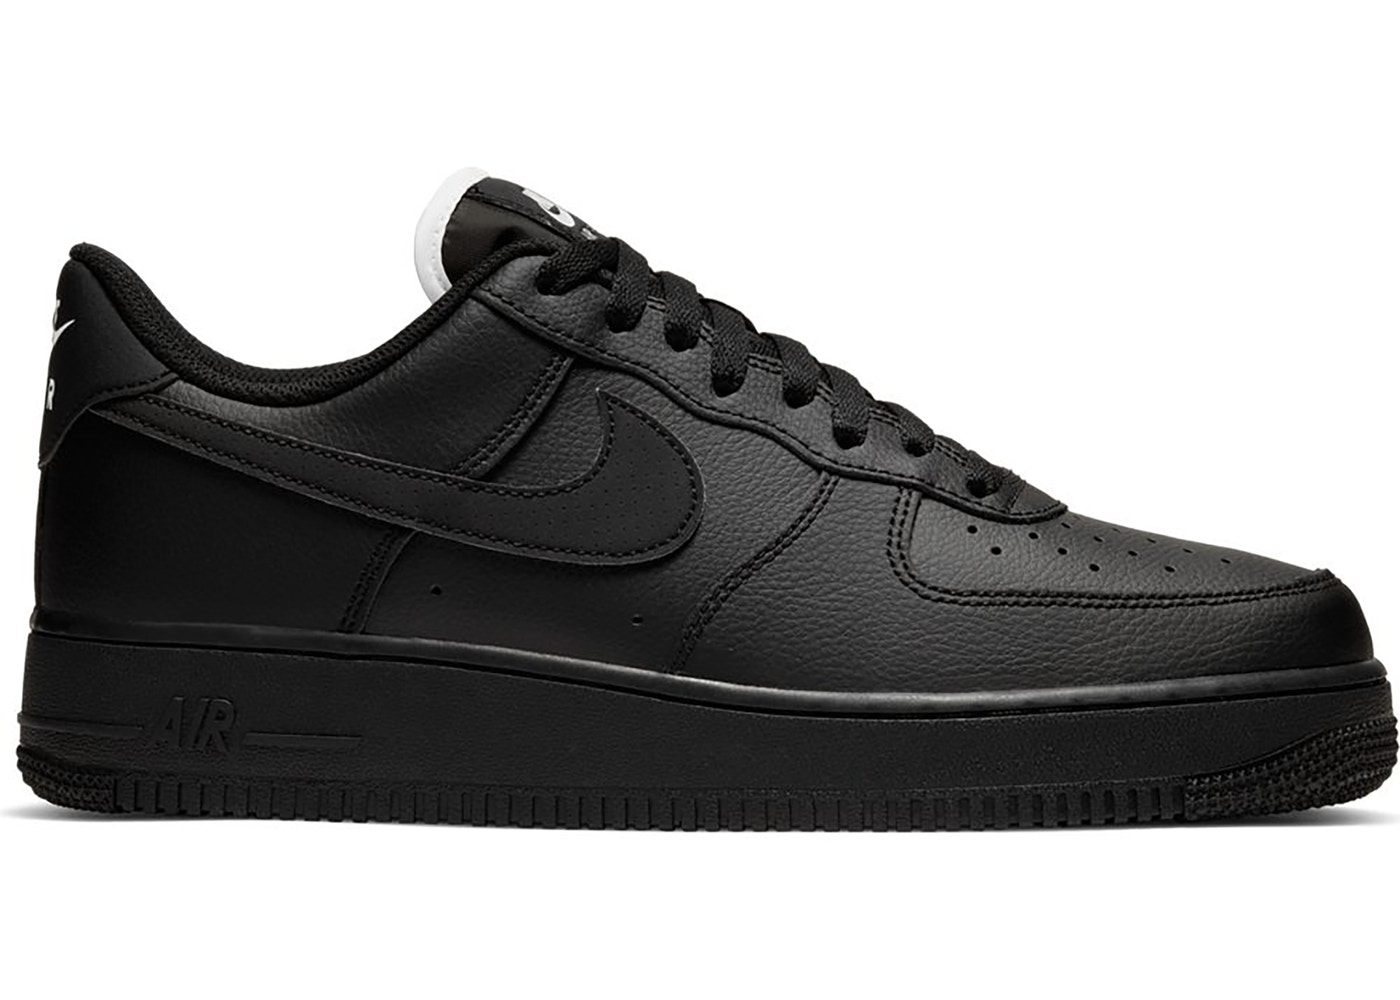 ropa interior construir Muy lejos  Nike Air Force 1 Low Triple Black (White Tongue) - CJ1607-001